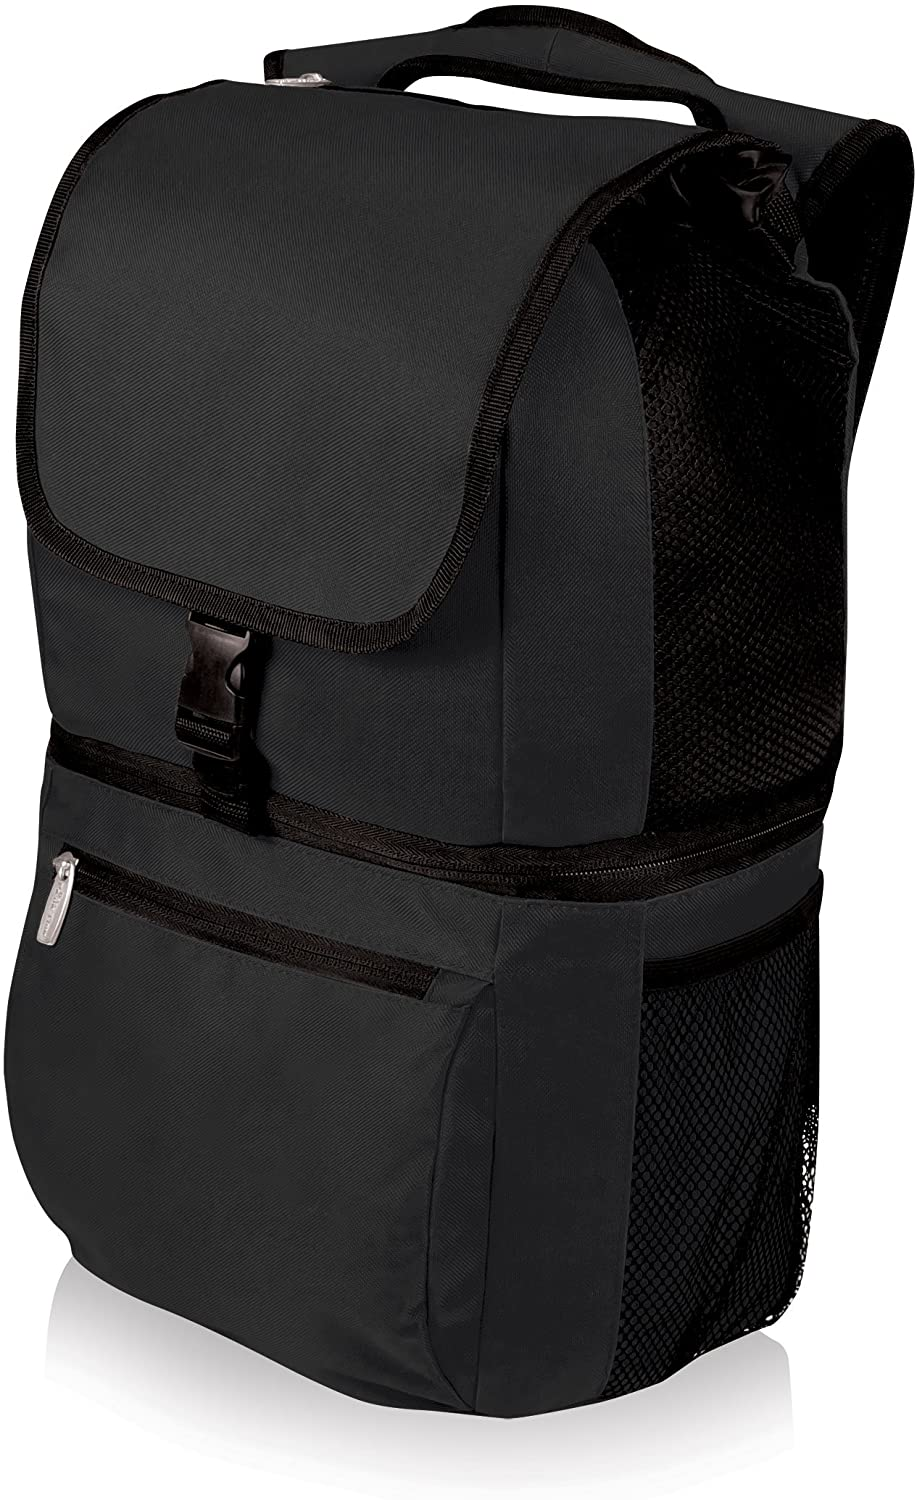 ONIVA – a Picnic Time Brand Zuma Insulated Cooler Backpack